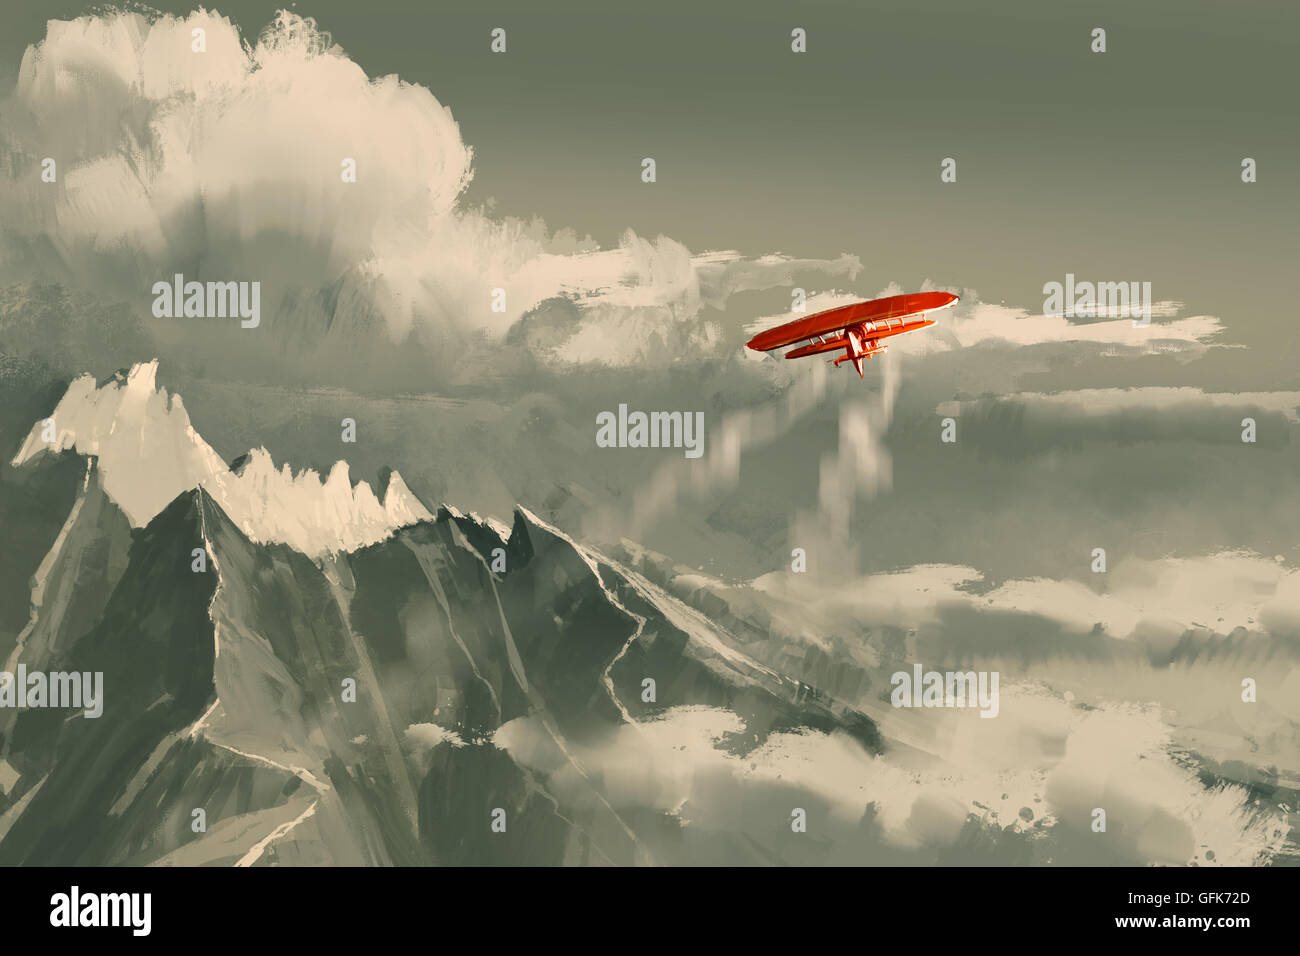 red biplane flying over mountain,illustration,digital painting - Stock Image